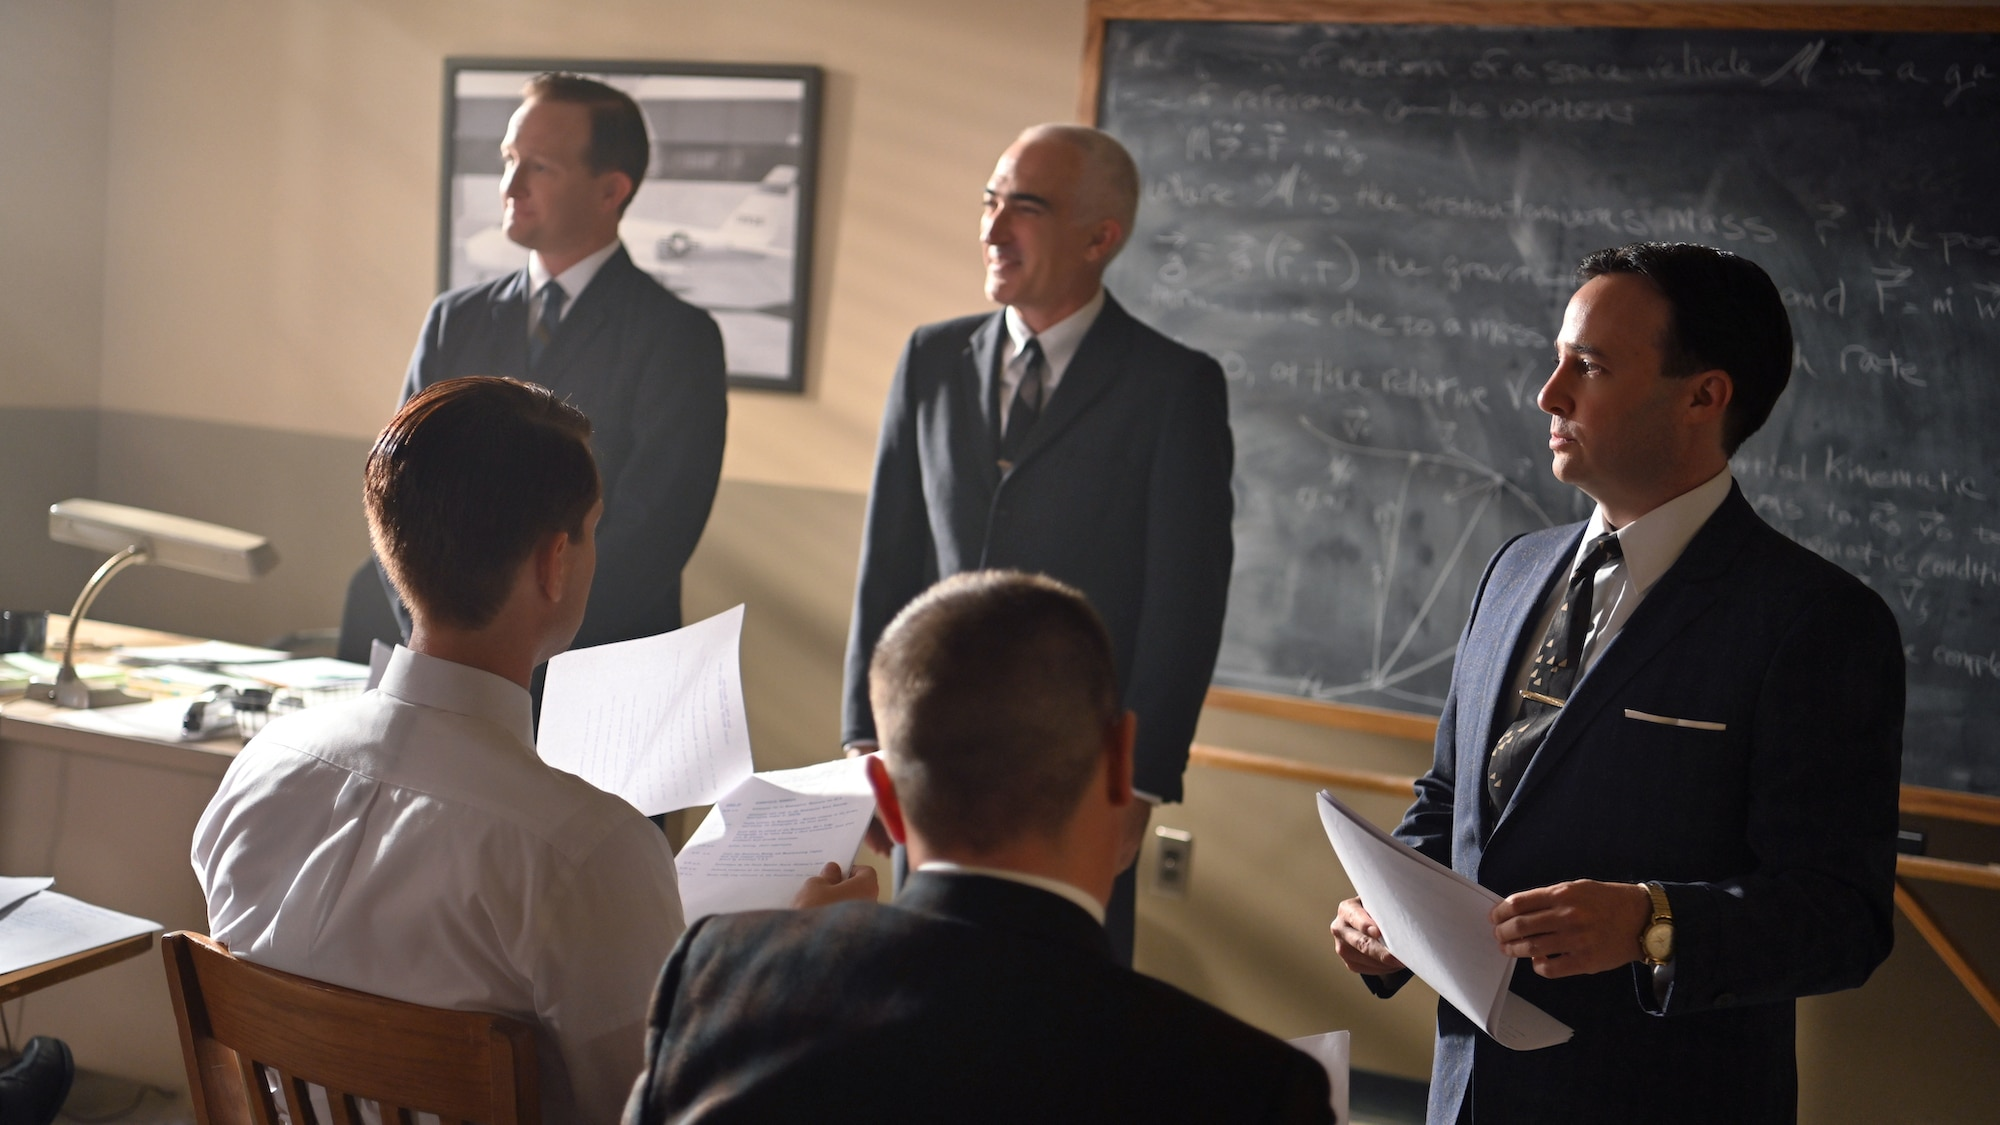 """Standing L to R: Chris Kraft played by Eric Ladin, Bob Gilruth played by Patrick Fischler and John """"Shorty"""" Powers played by Danny Strong speak to the Mercury astronauts about space program public relations."""